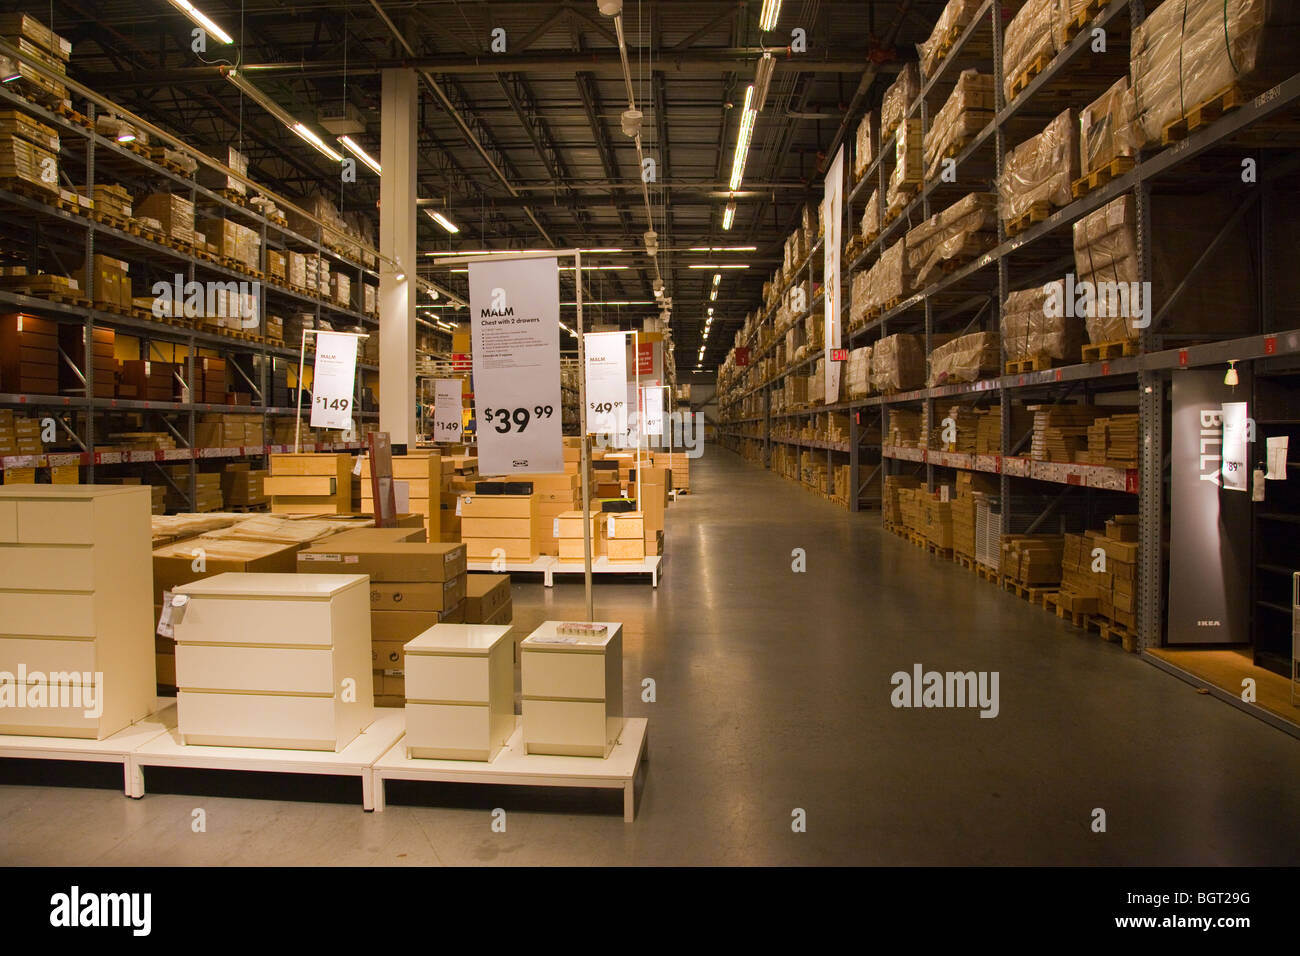 Warehouse area at the Ikea Store in Red Hook Brooklyn, New